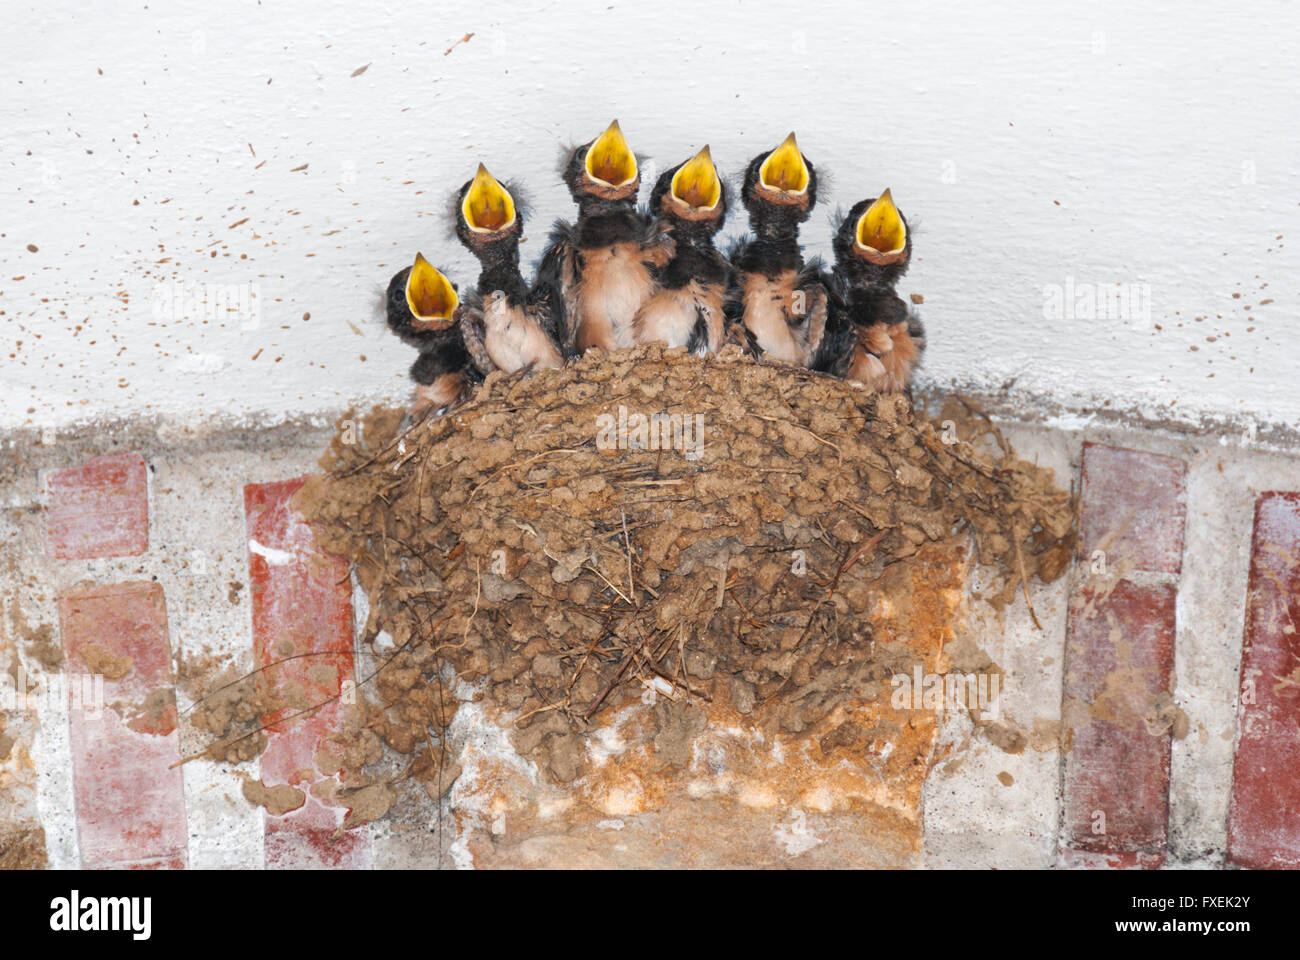 Barn swallow nestlings in their nest calling for food - Stock Image